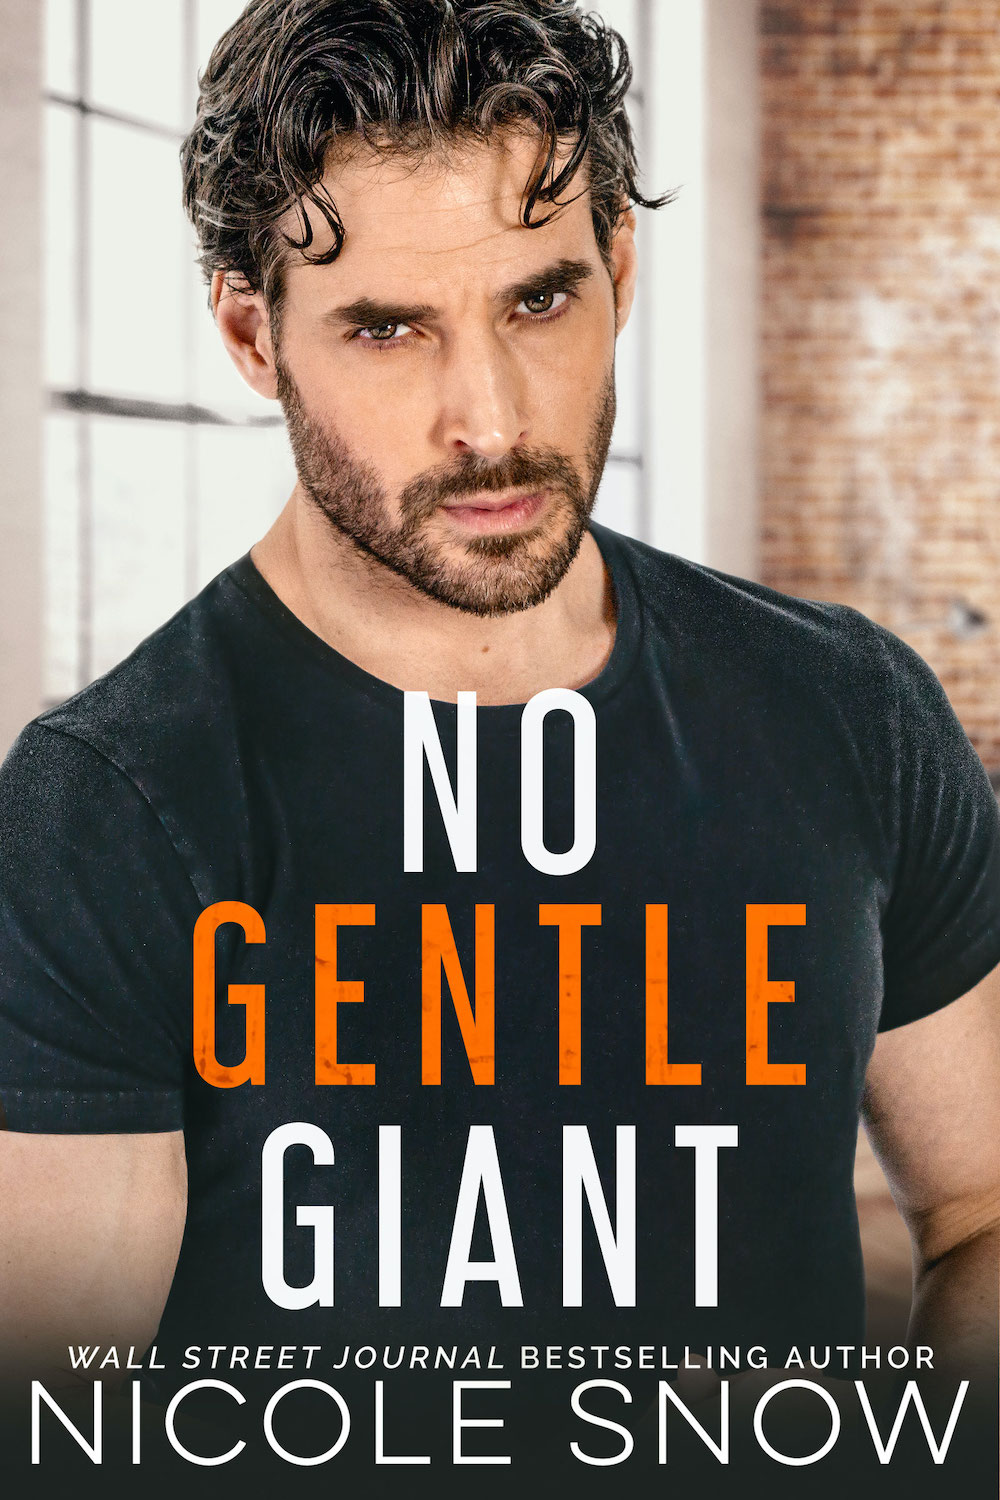 NGG - How fierce? Book Blitz and Review